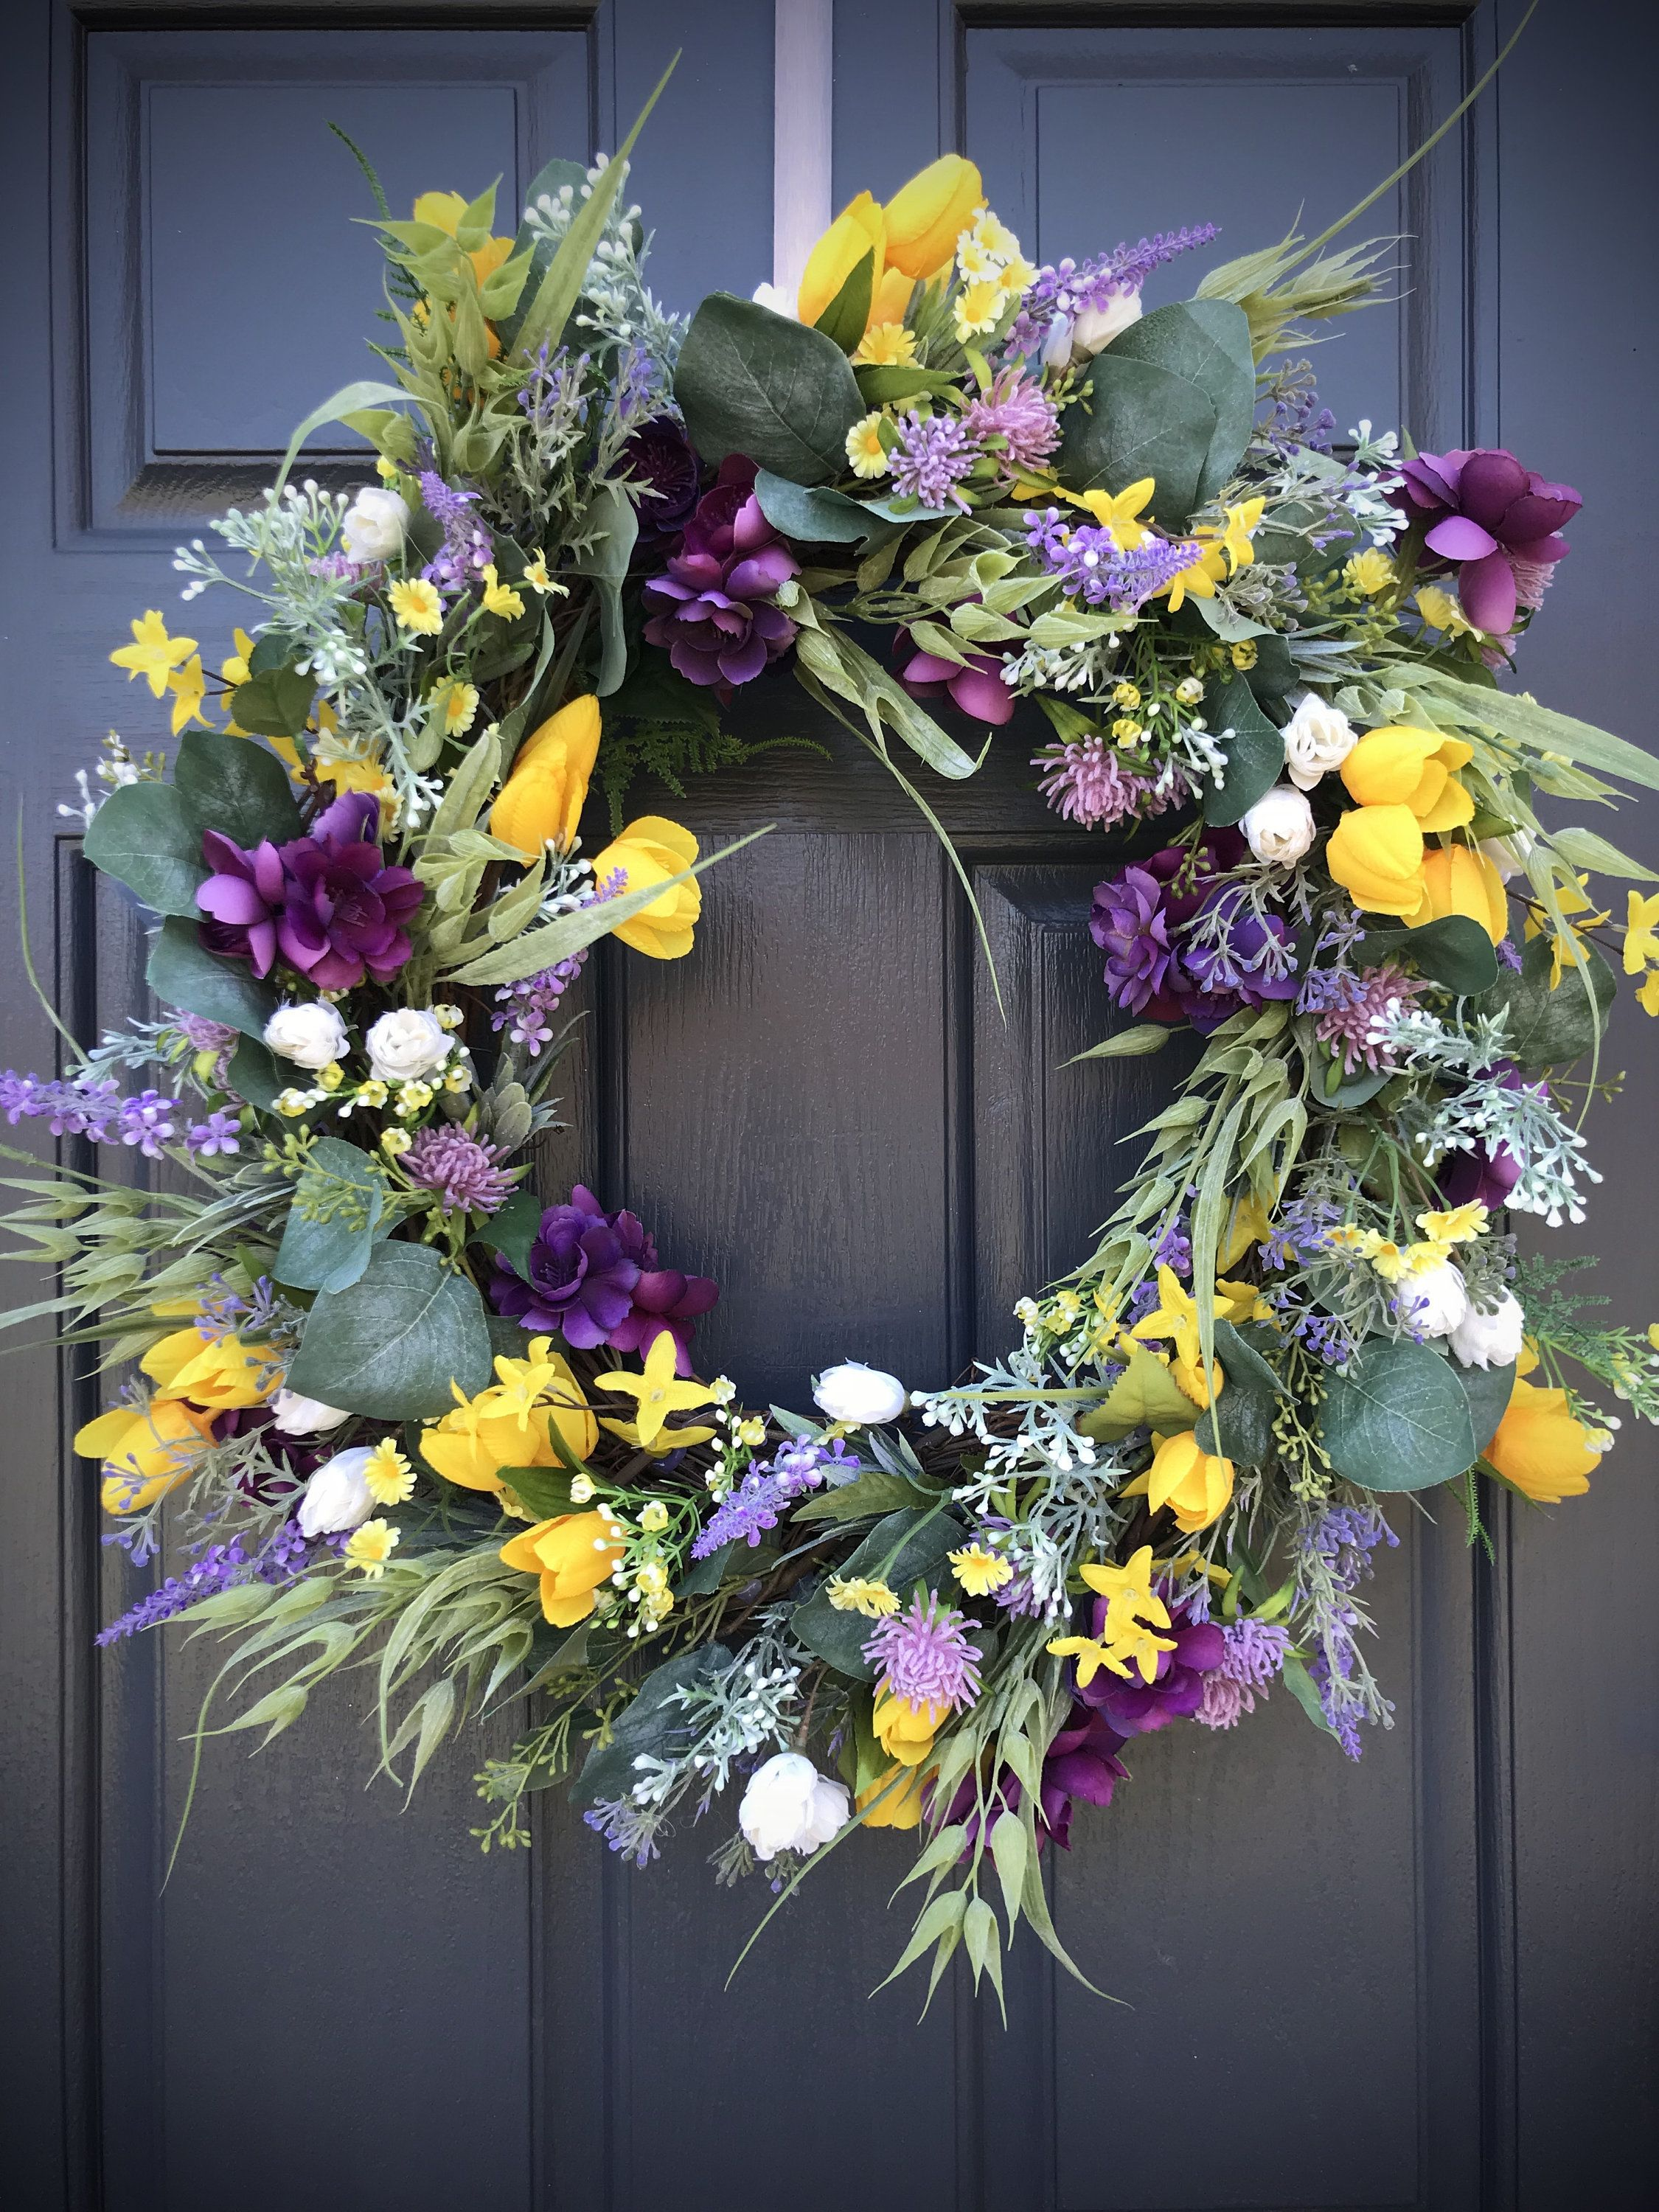 Photo of Spring wreath Spring door wreaths Purple Yellow White Tulips Door decor Spring Mother's Day Easter Gift ideas Housewarming gift Spring decor